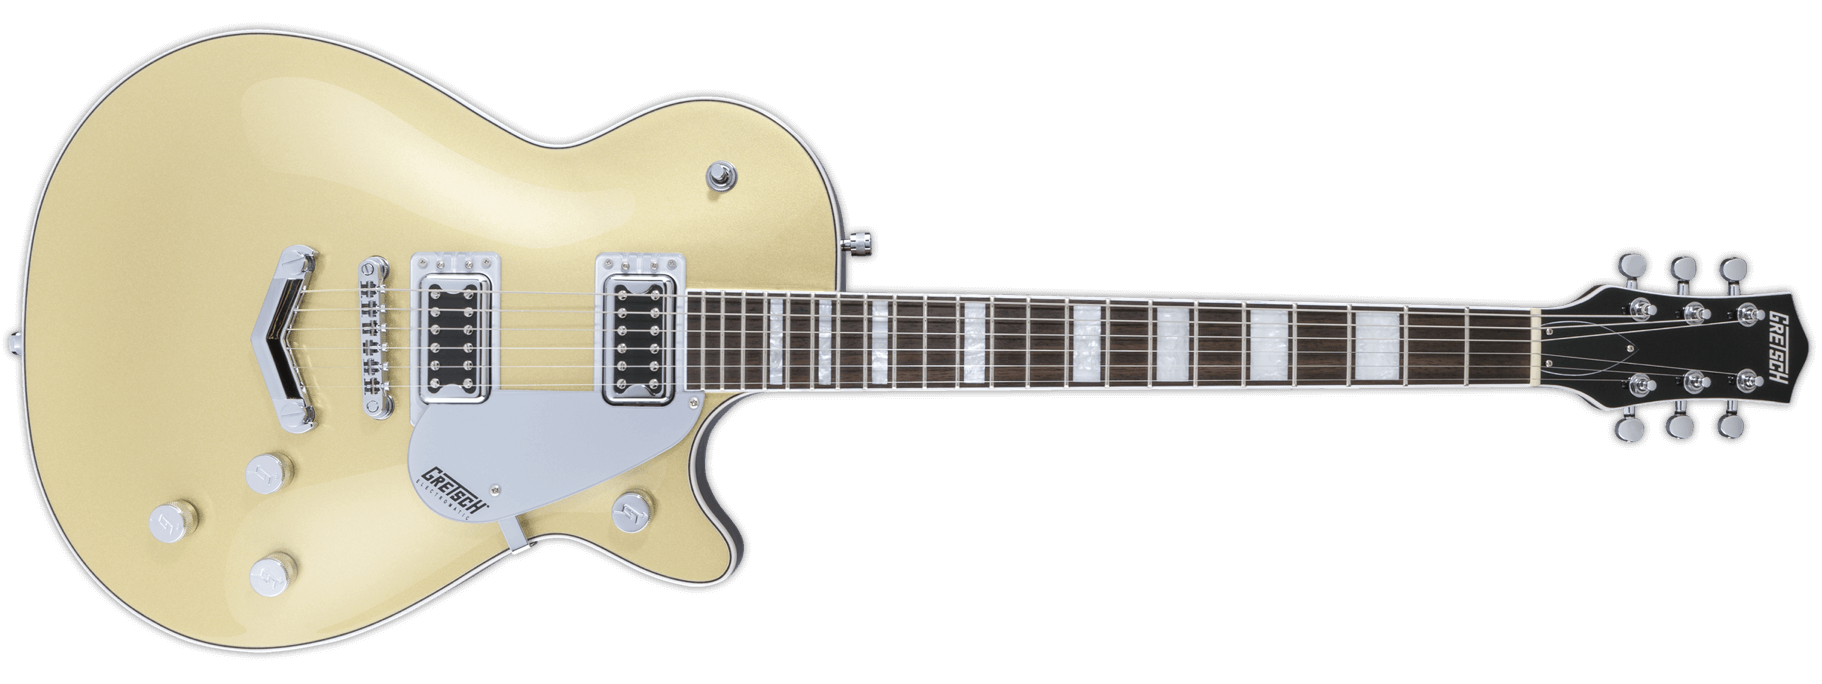 Gretsch G5220 Electromatics Jet BT Casino Gold